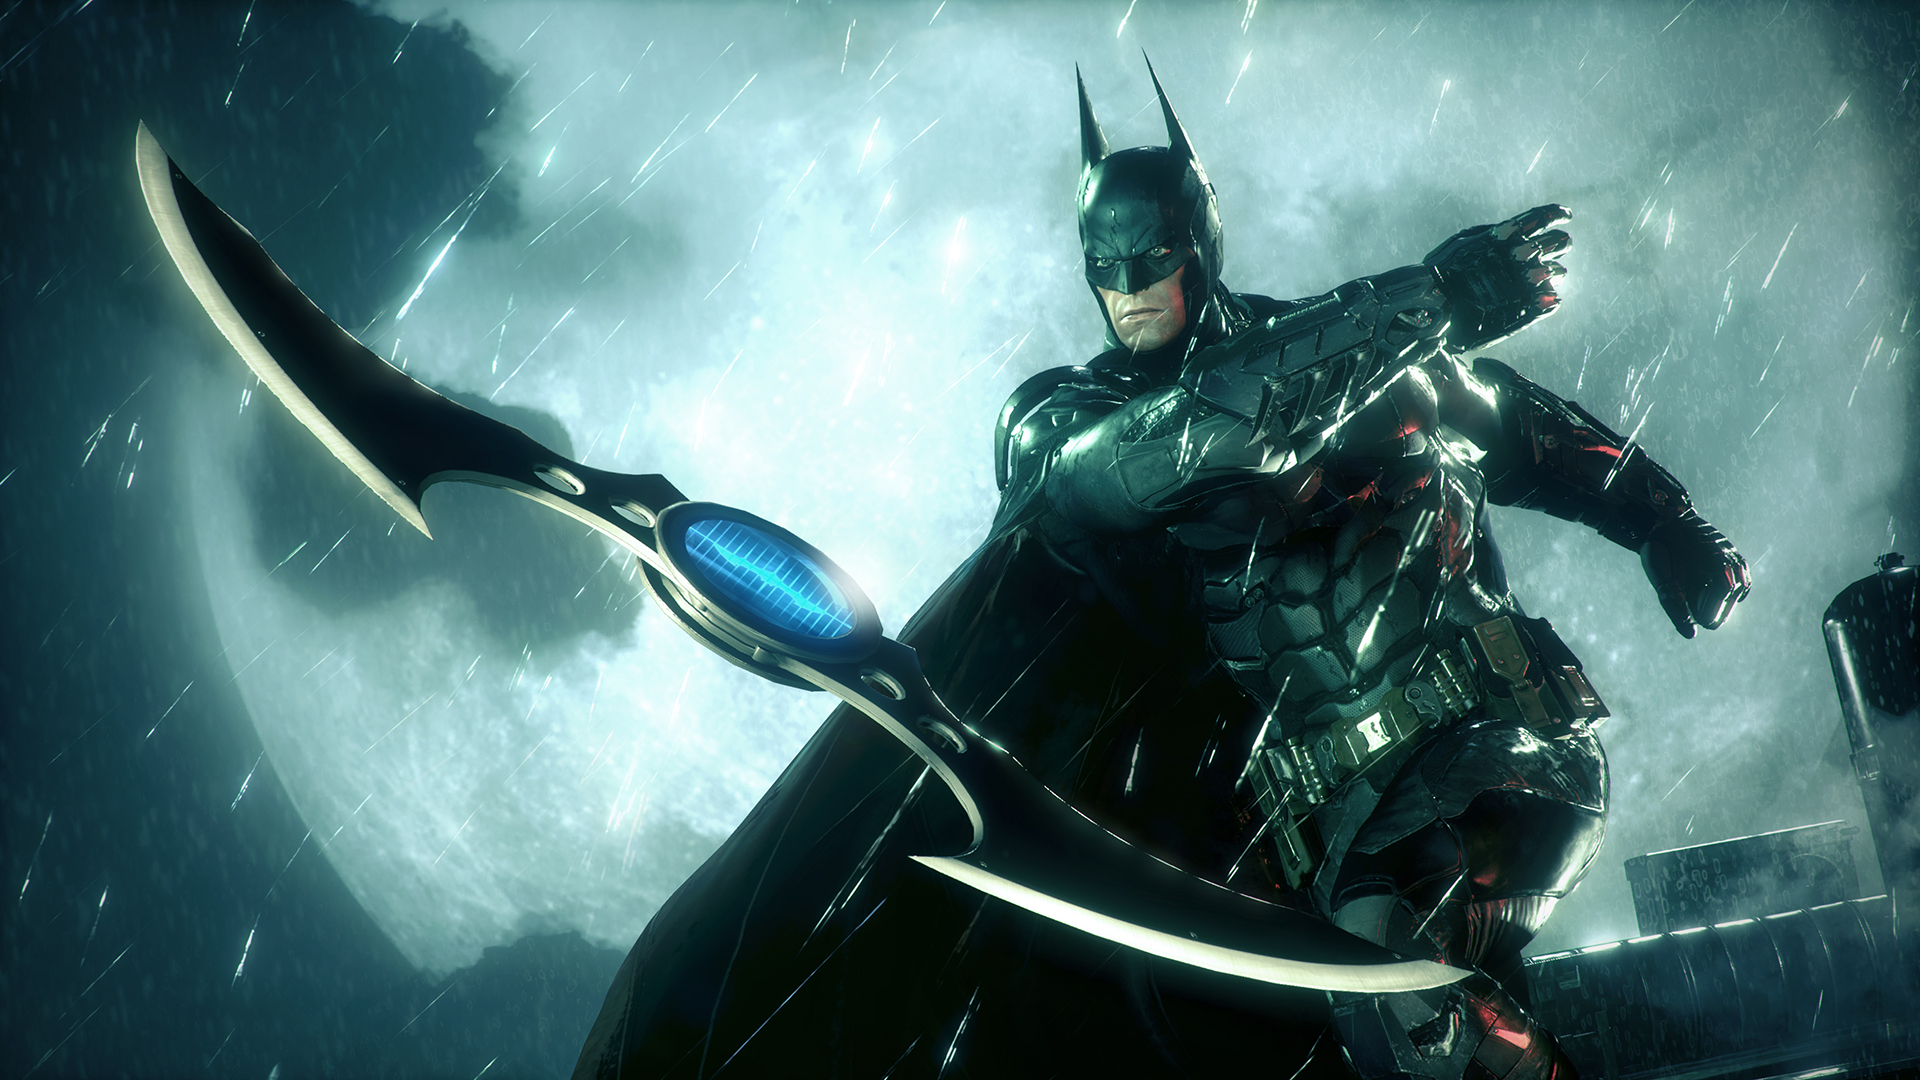 Batman: Arkham Knight launching June 2, 2015, with two special editions (update)